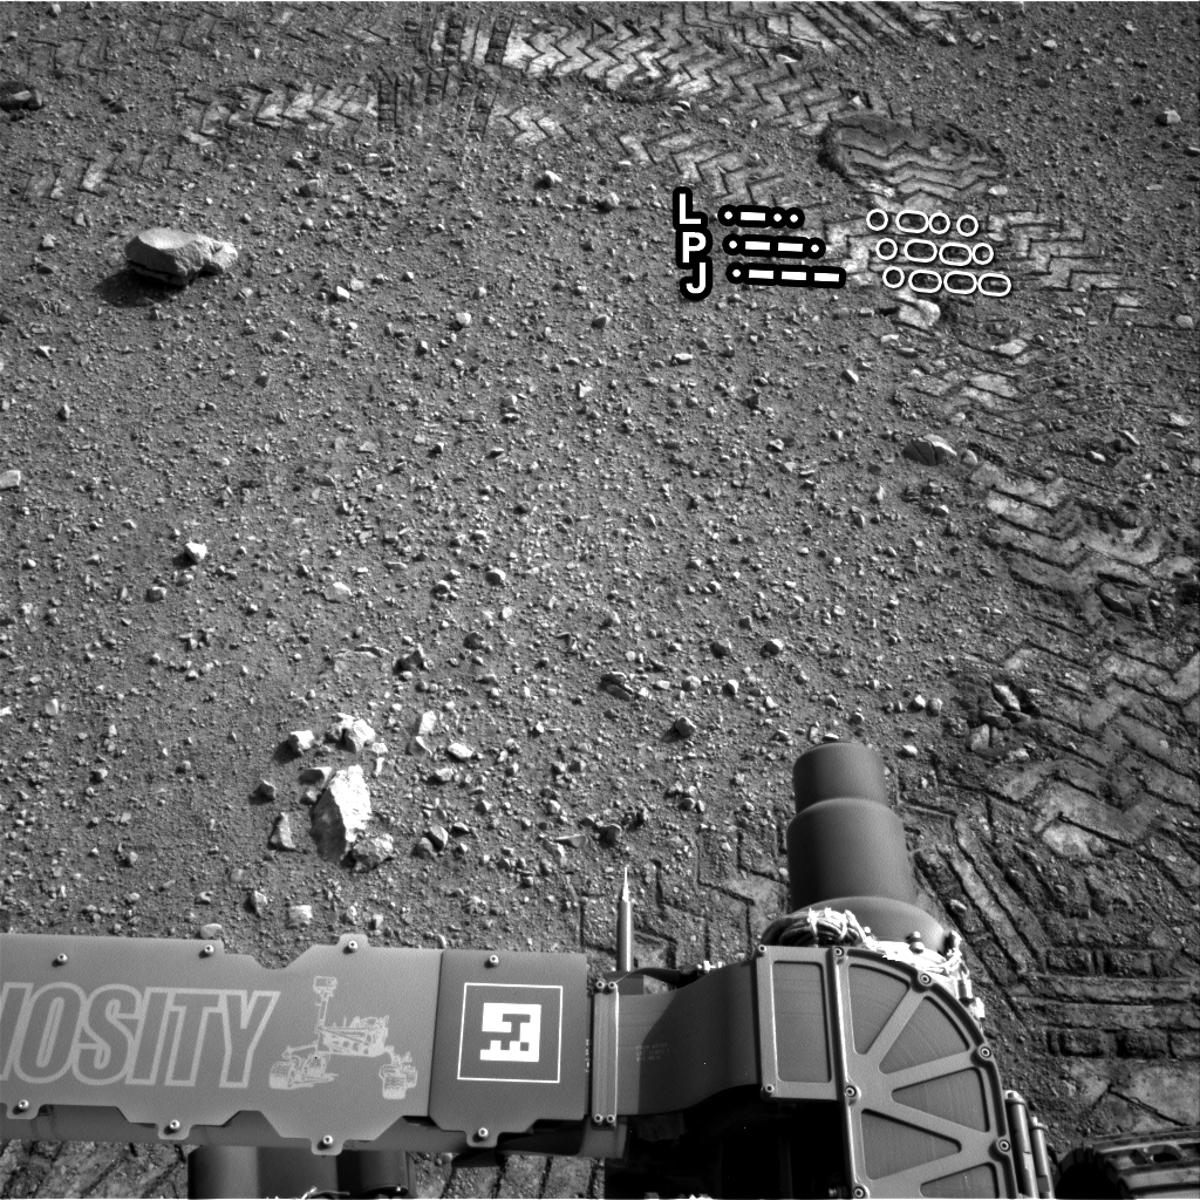 """Curiosity's track marks spelling out """"JPL"""" in Morse code (Image: NASA/JPL-Caltech)"""